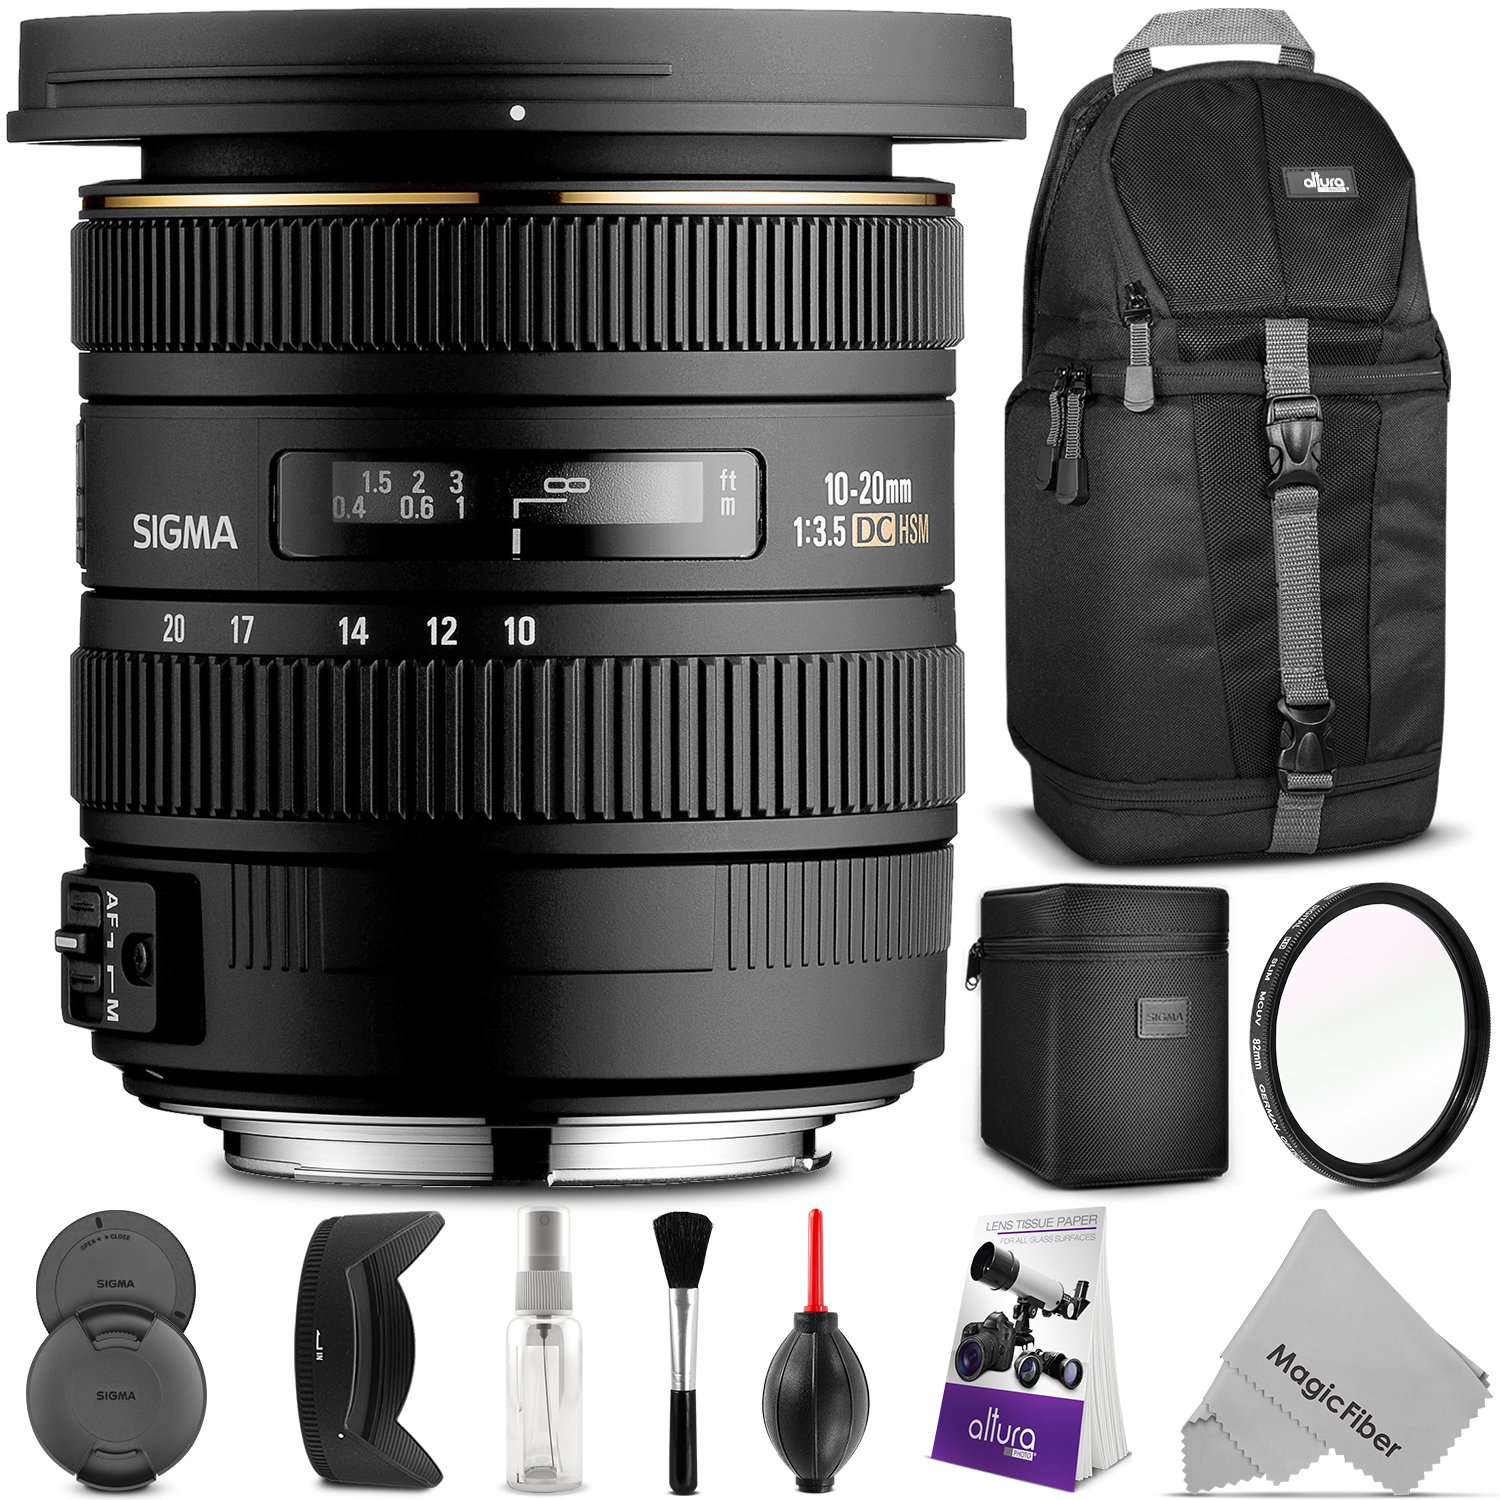 Sigma 10-20mm f/3.5 EX DC HSM ELD SLD Wide-Angle Lens for CANON DSLR Cameras w/ Essential Photo and Travel Bundle by Sigma